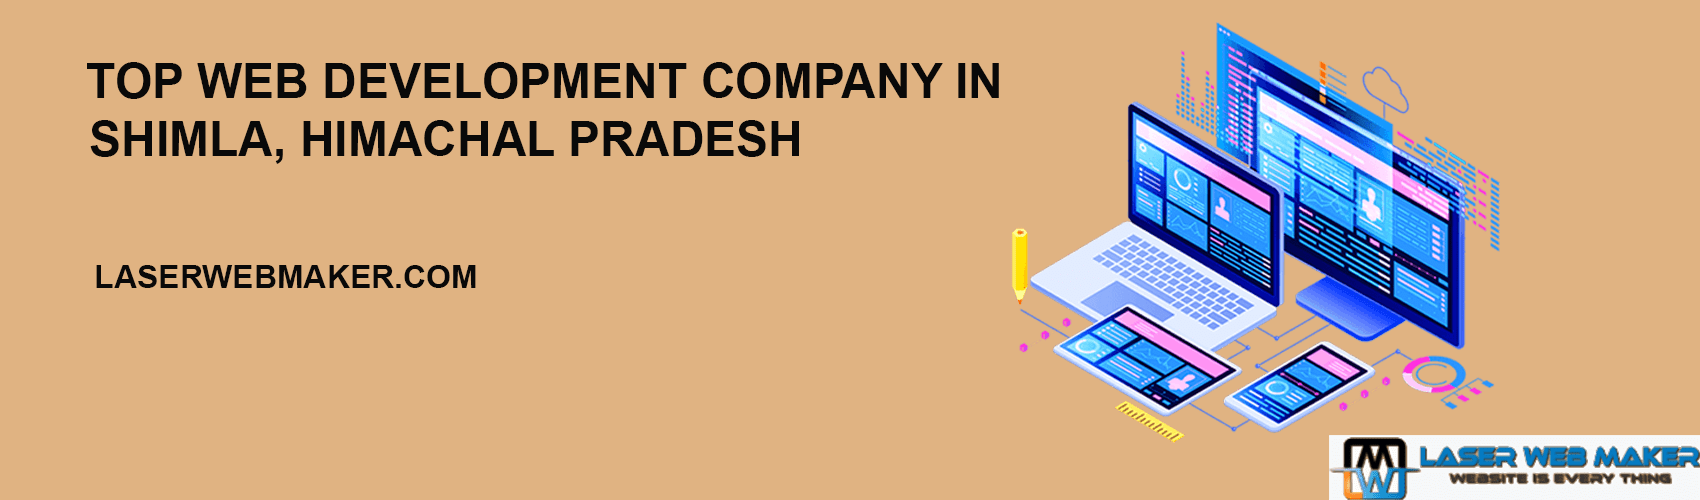 Top web development company in Shimla, Himachal Pradesh